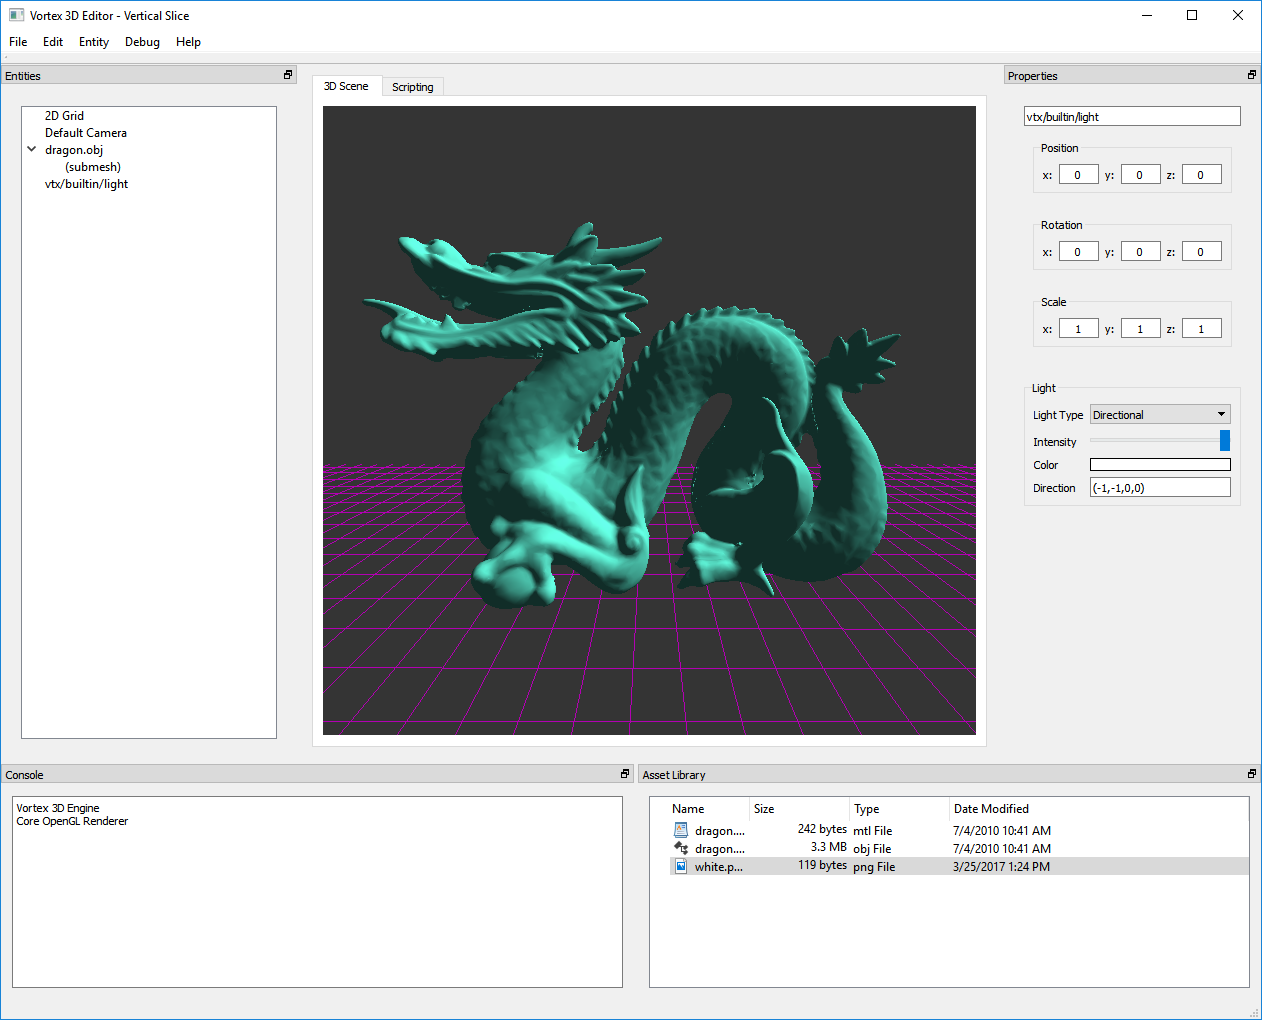 The Stanford Dragon 3D model rendered with a single directional light by the new deferred renderer.